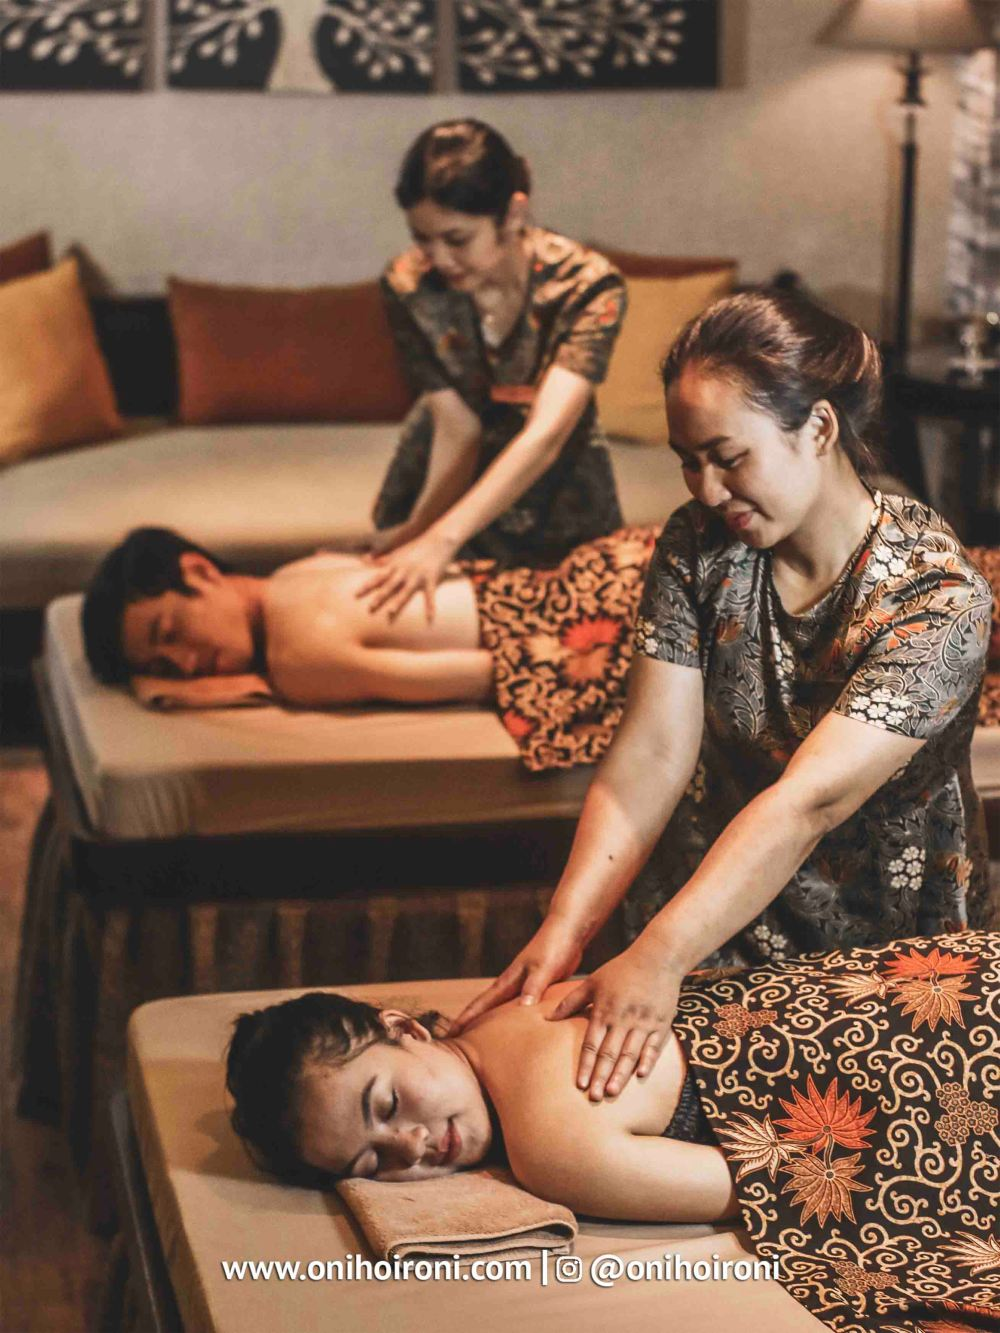 5 The Spa Courtyard Bandung oni hoironi copy copy